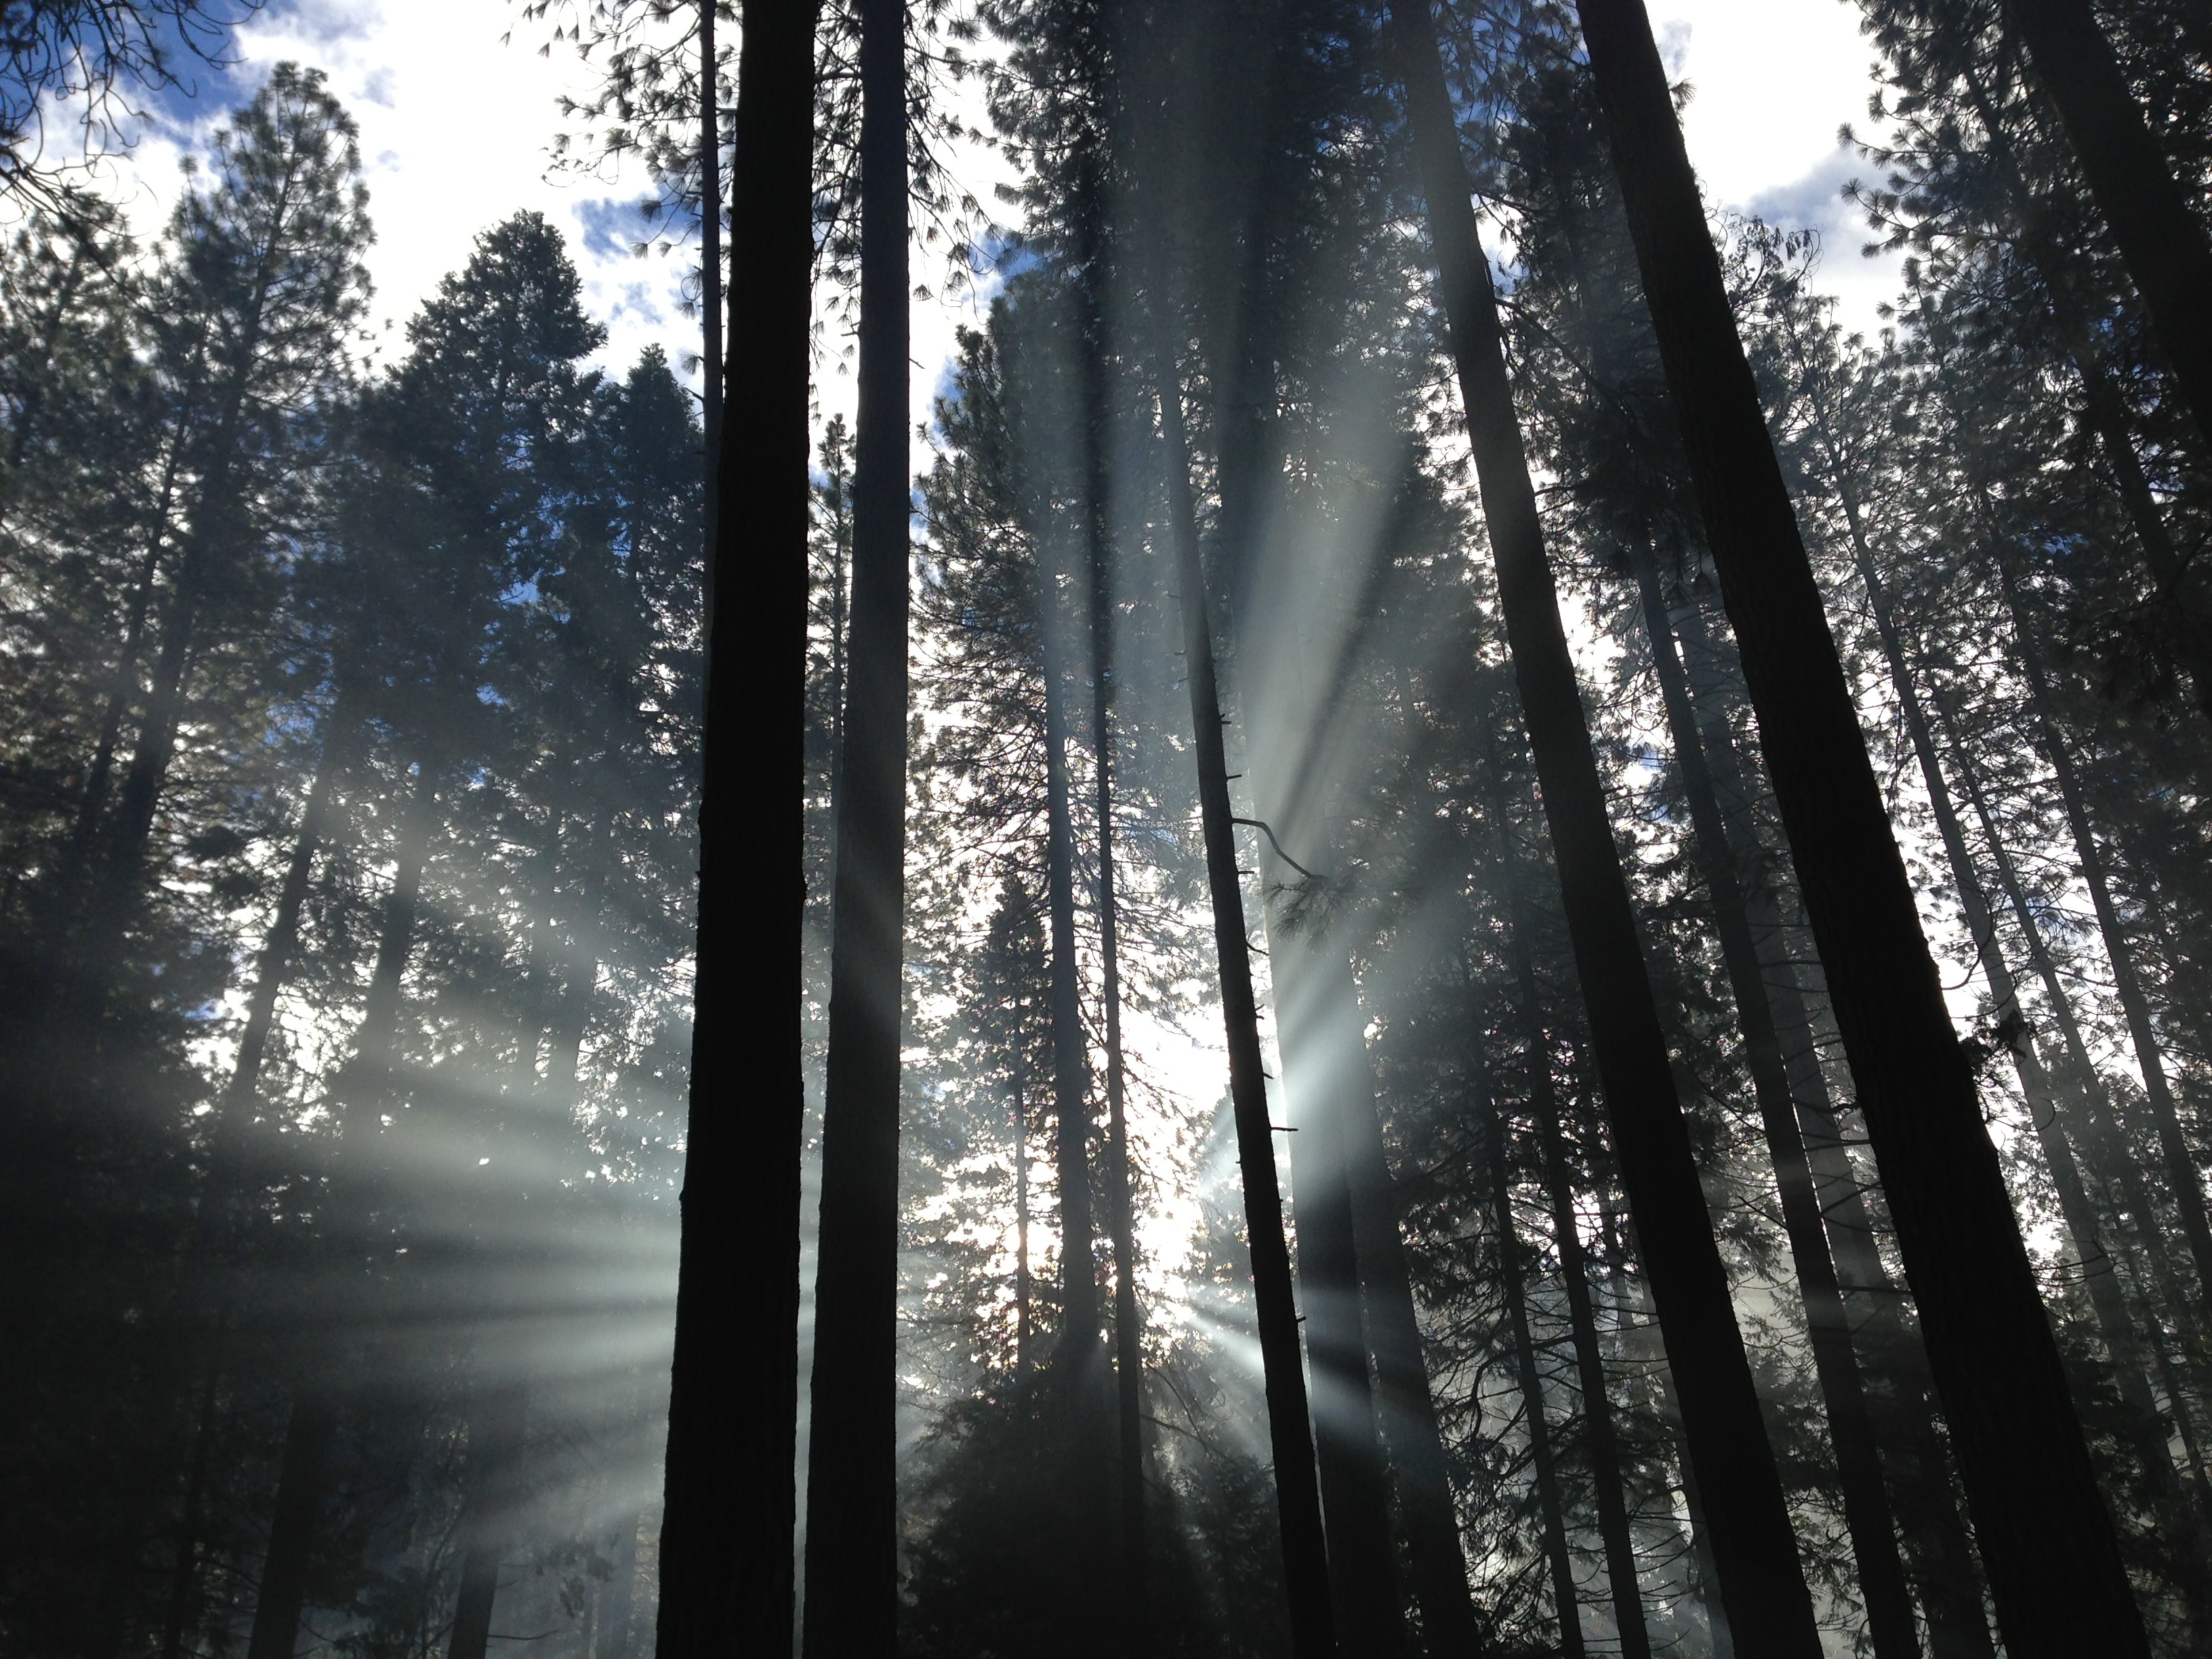 Morning sun breaking through the trees in Yosemite National Park